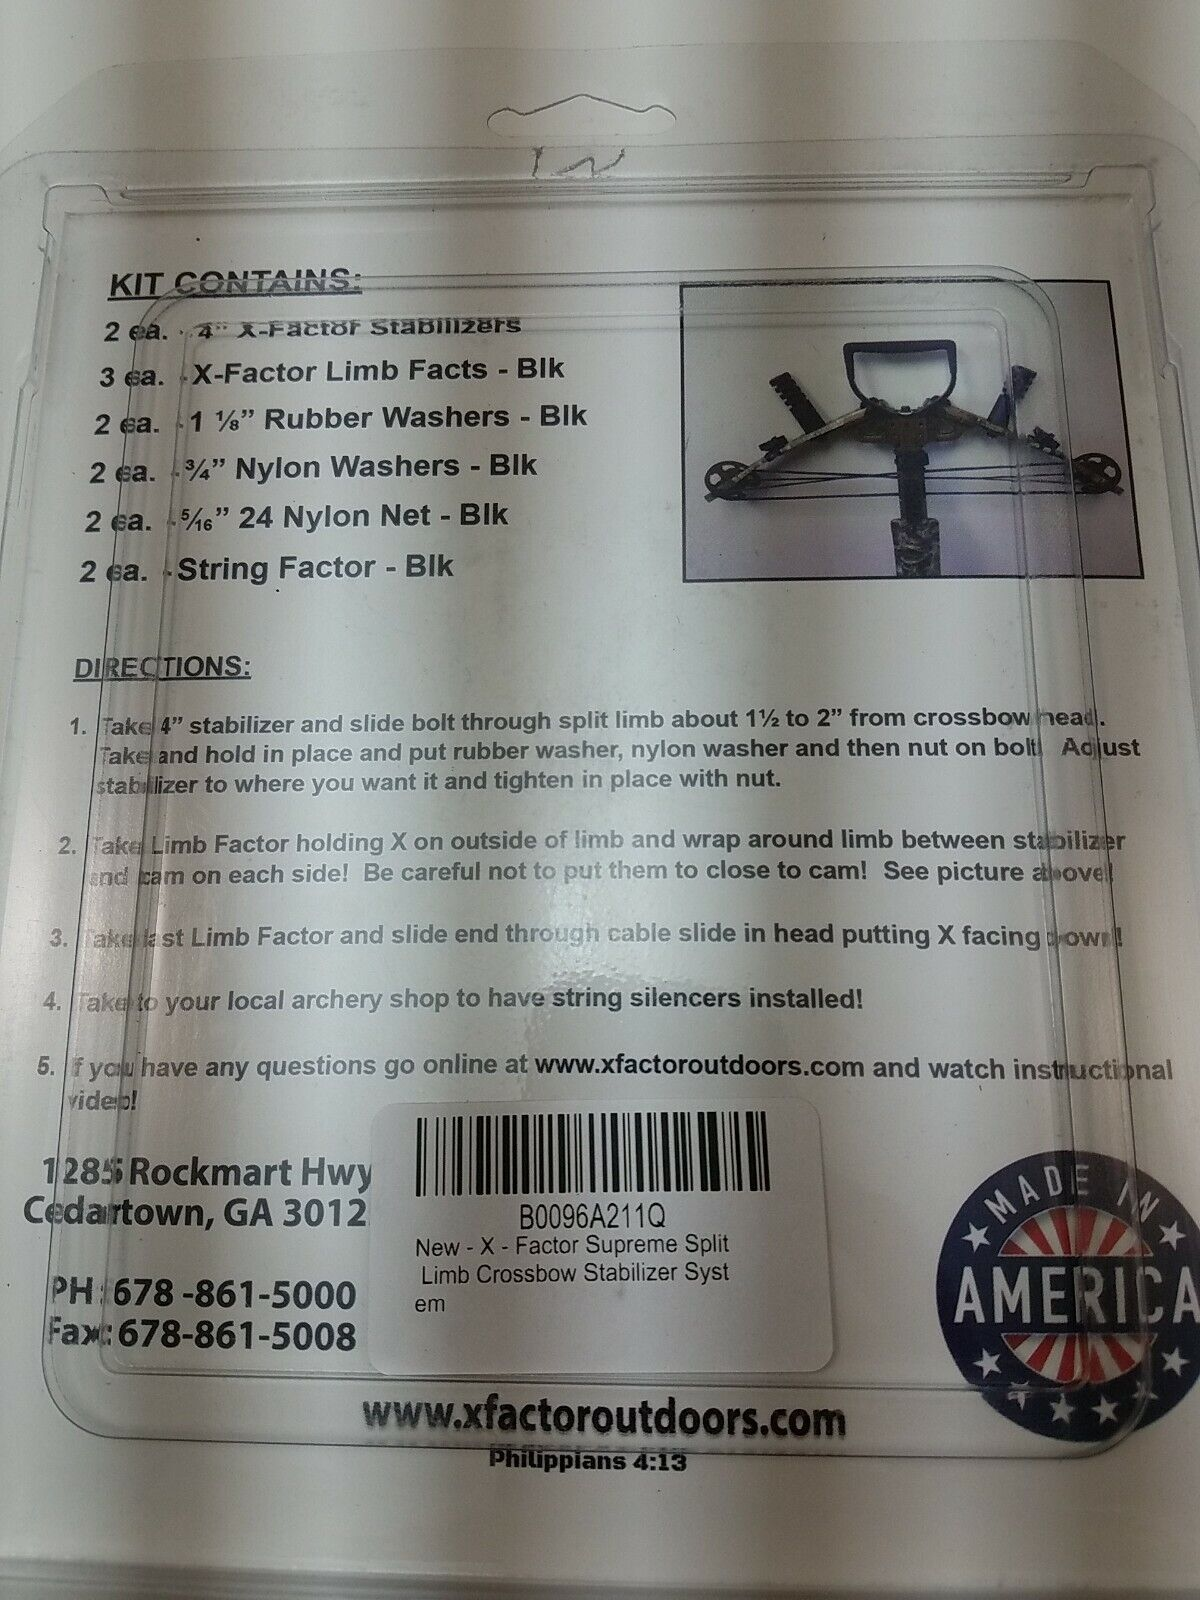 Xfactor Supreme Split Limb Crossbow Dampening System Made in America A0107 for sale online